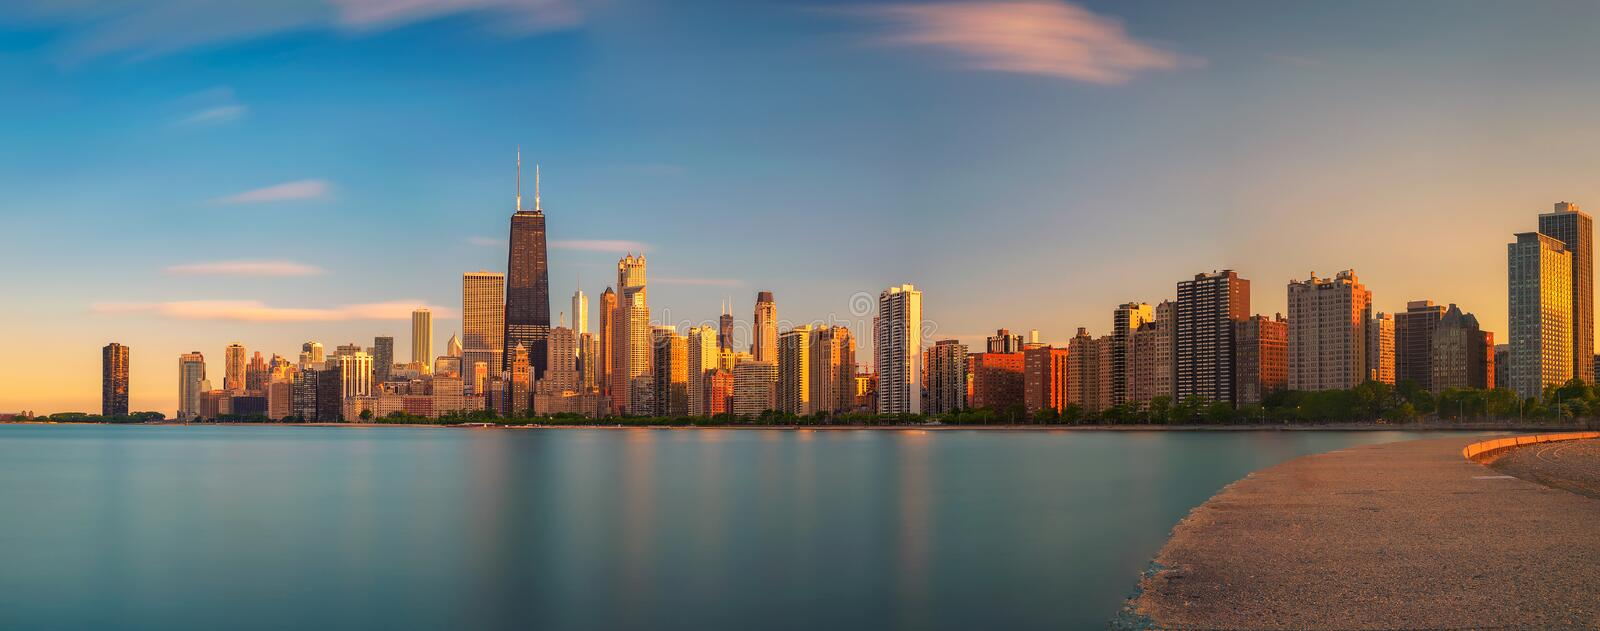 Chicago skyline at sunset viewed from North Avenue Beach royalty free stock images